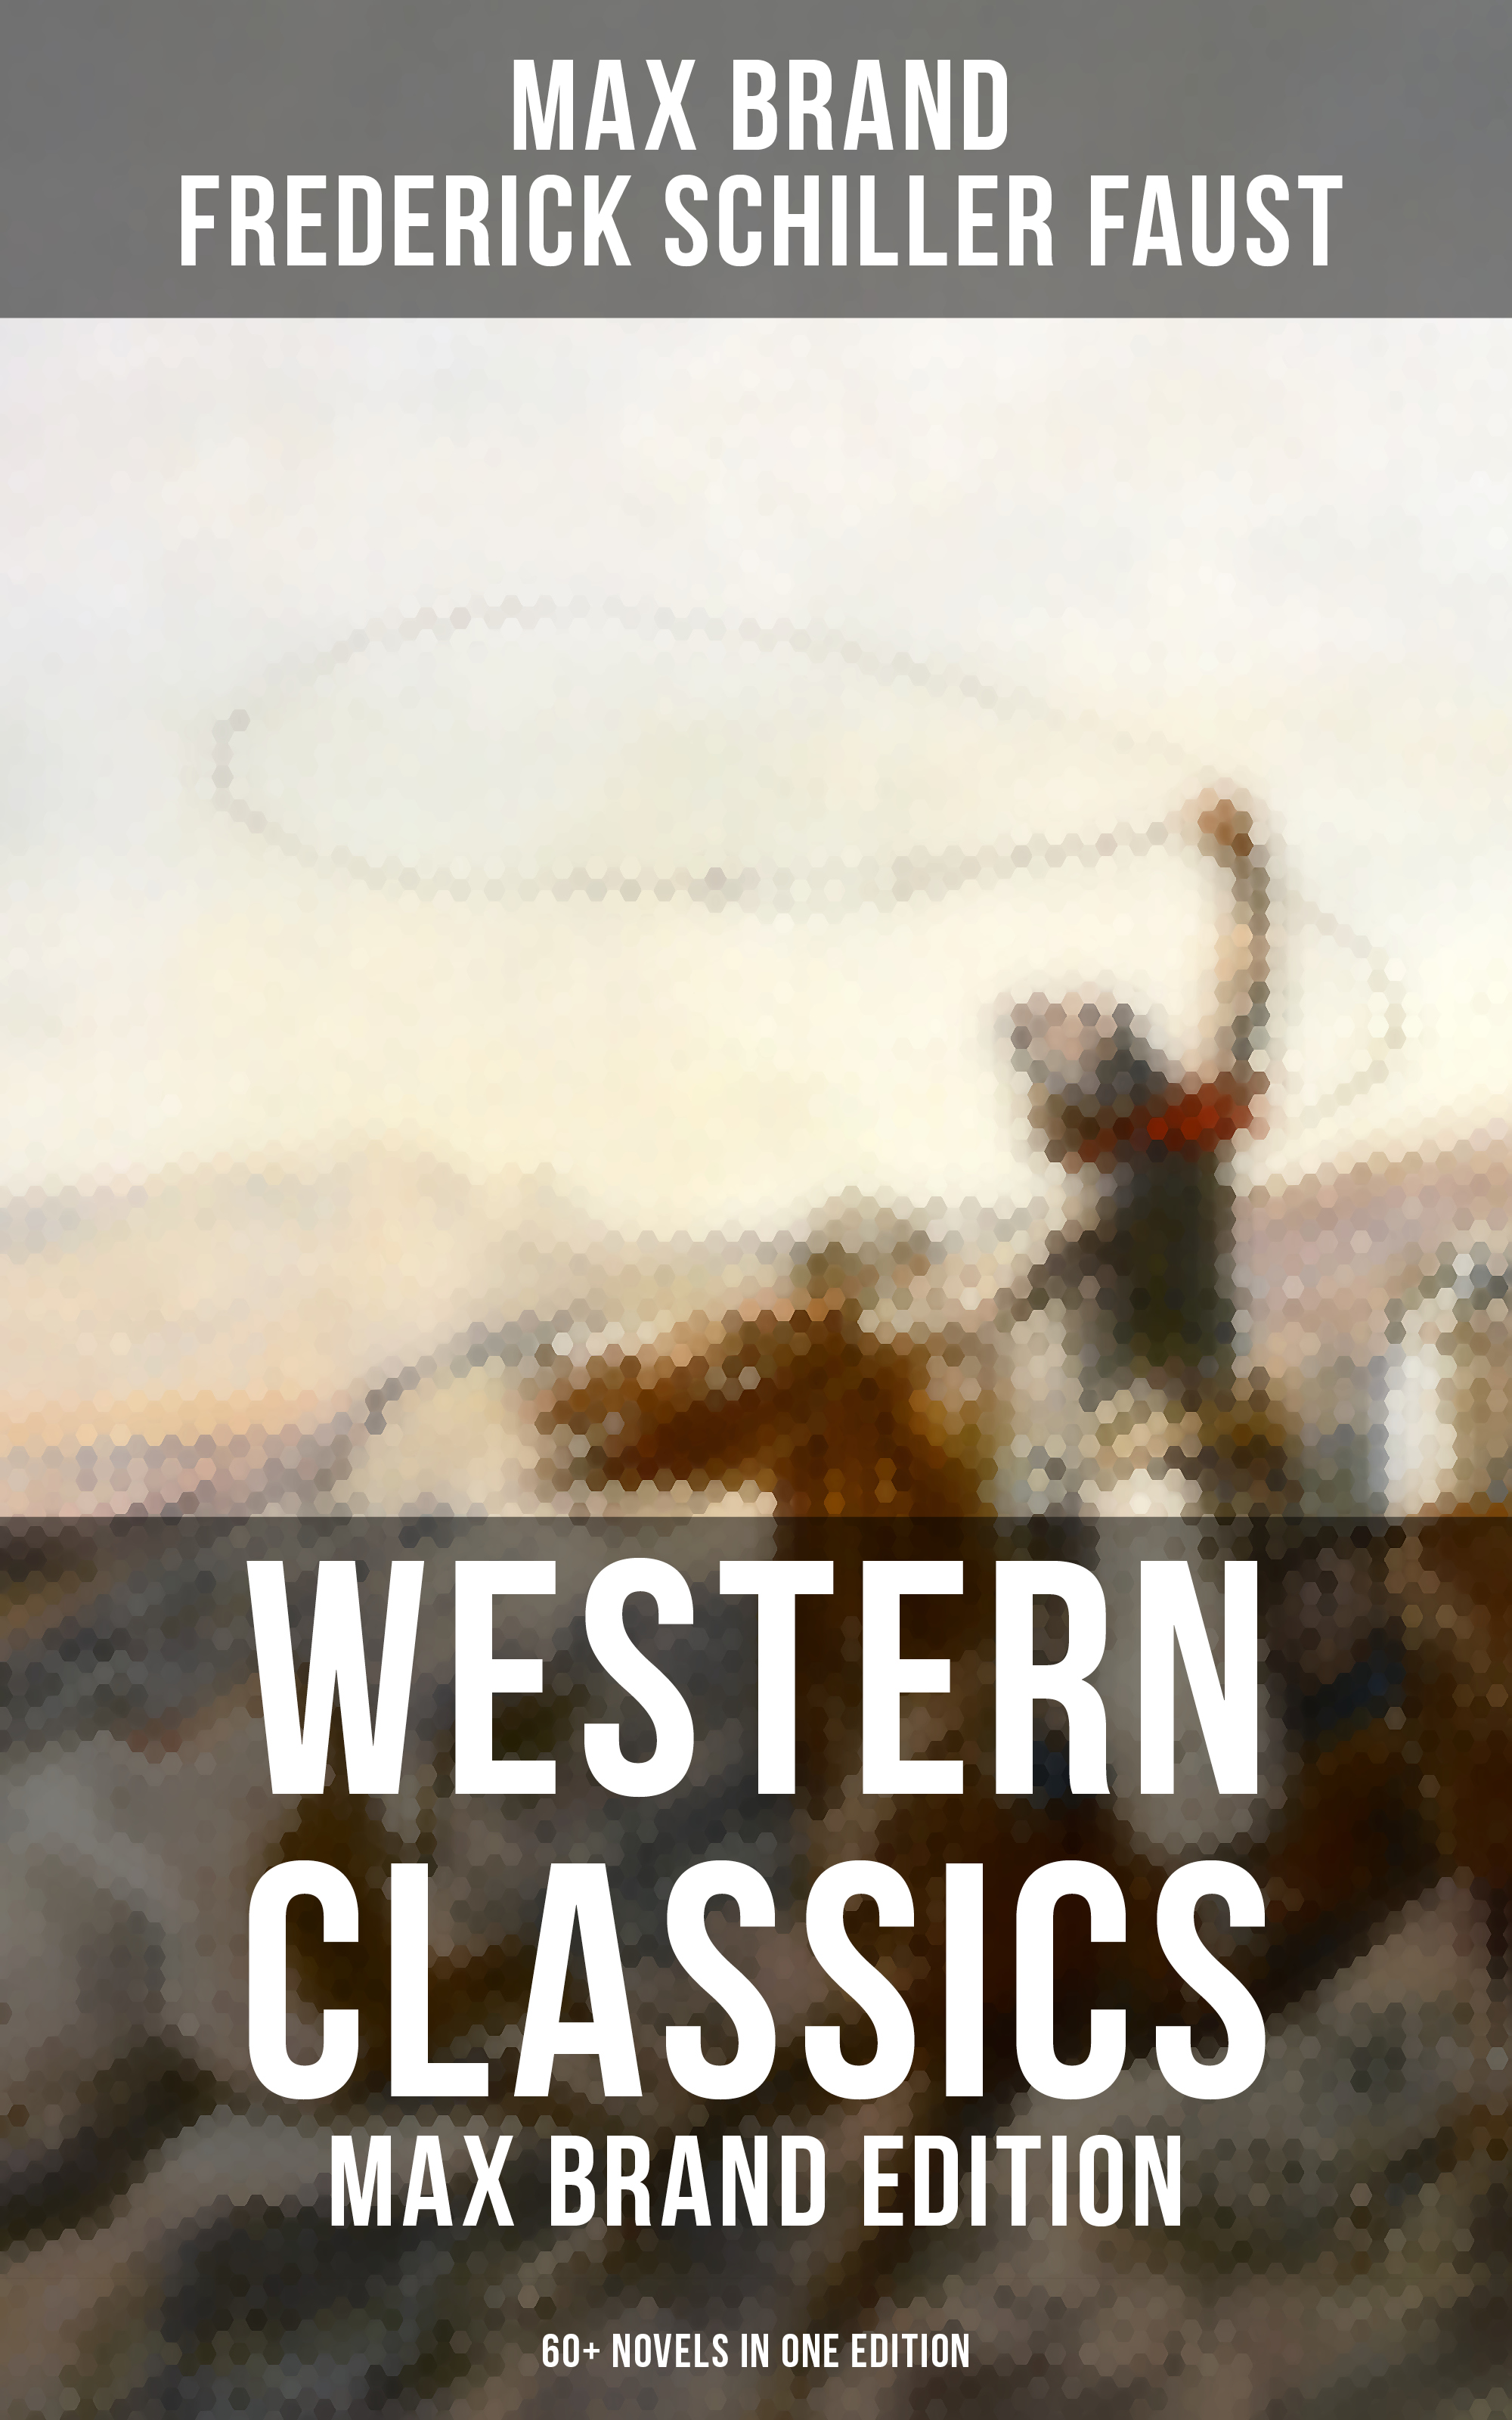 Max Brand WESTERN CLASSICS: Max Brand Edition - 60+ Novels in One Edition max brand donnegan